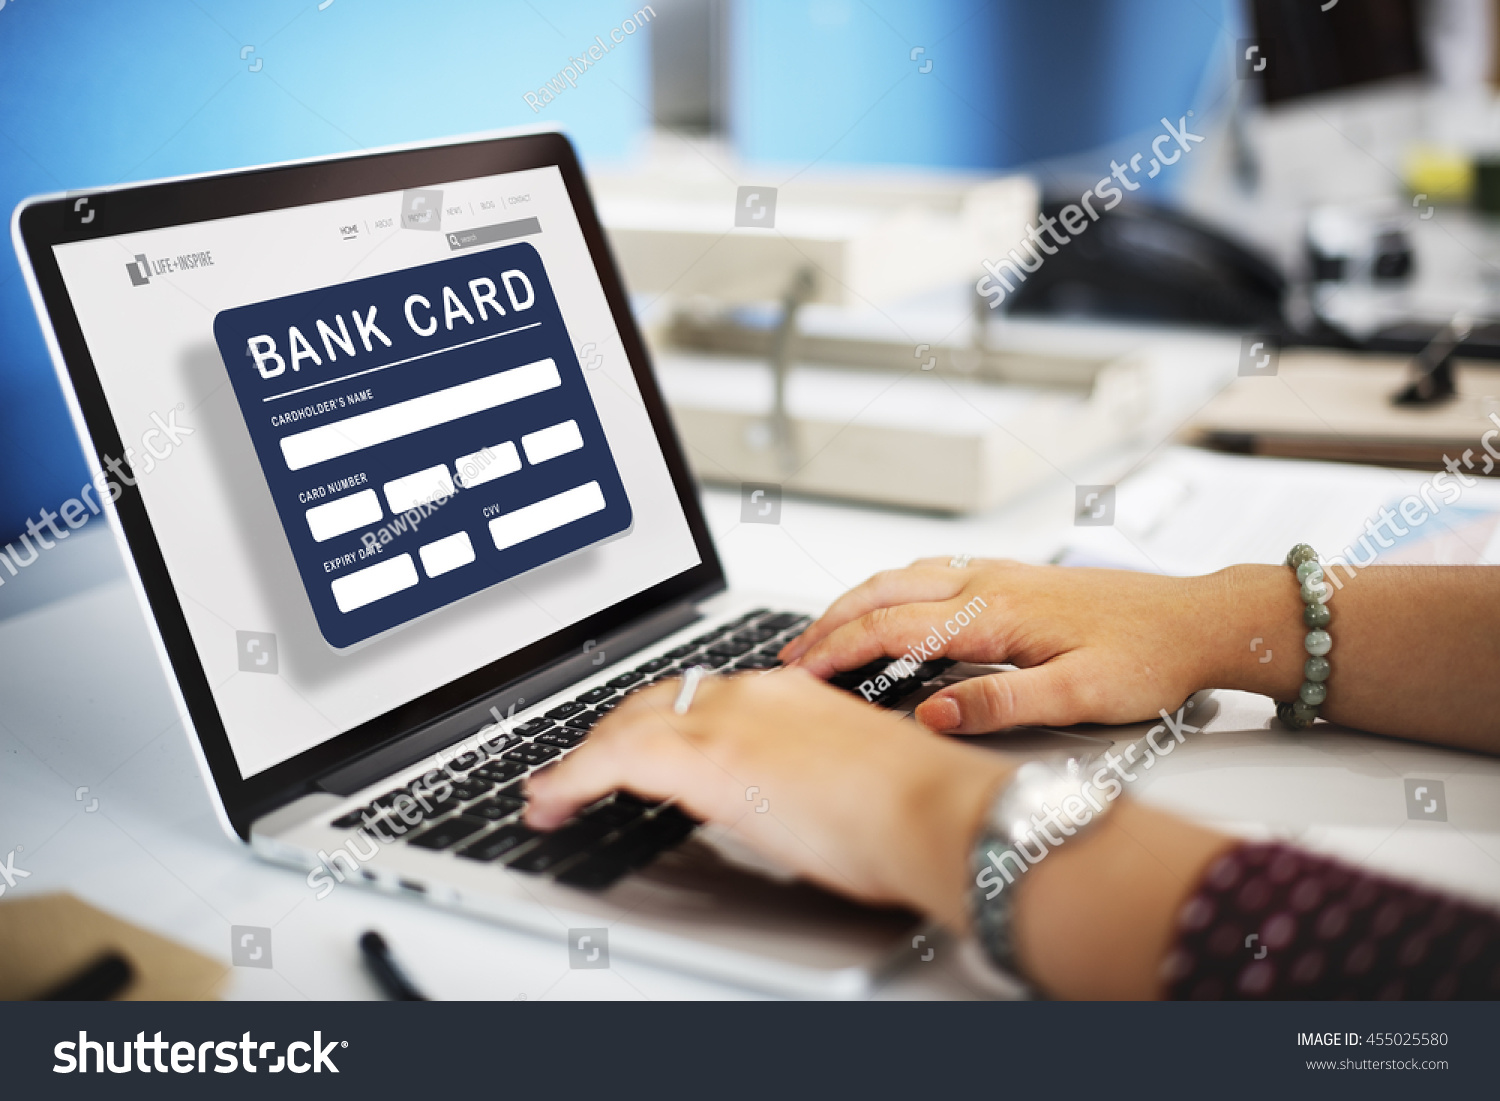 Account Atm Card Bank Finance Concept Stock Photo ...